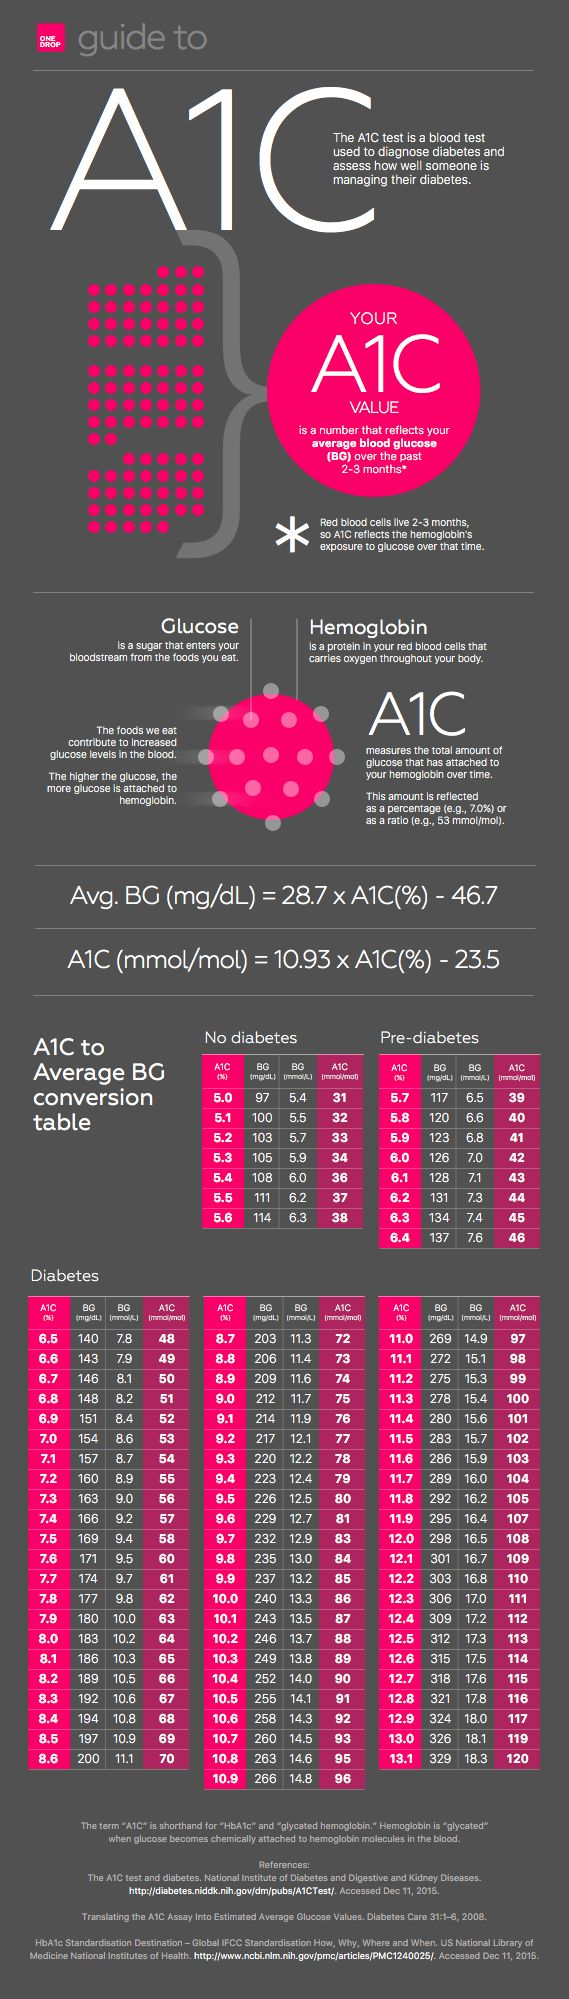 A1C Average Blood Glucose/Blood Sugar - Explanation and Conversion Chart